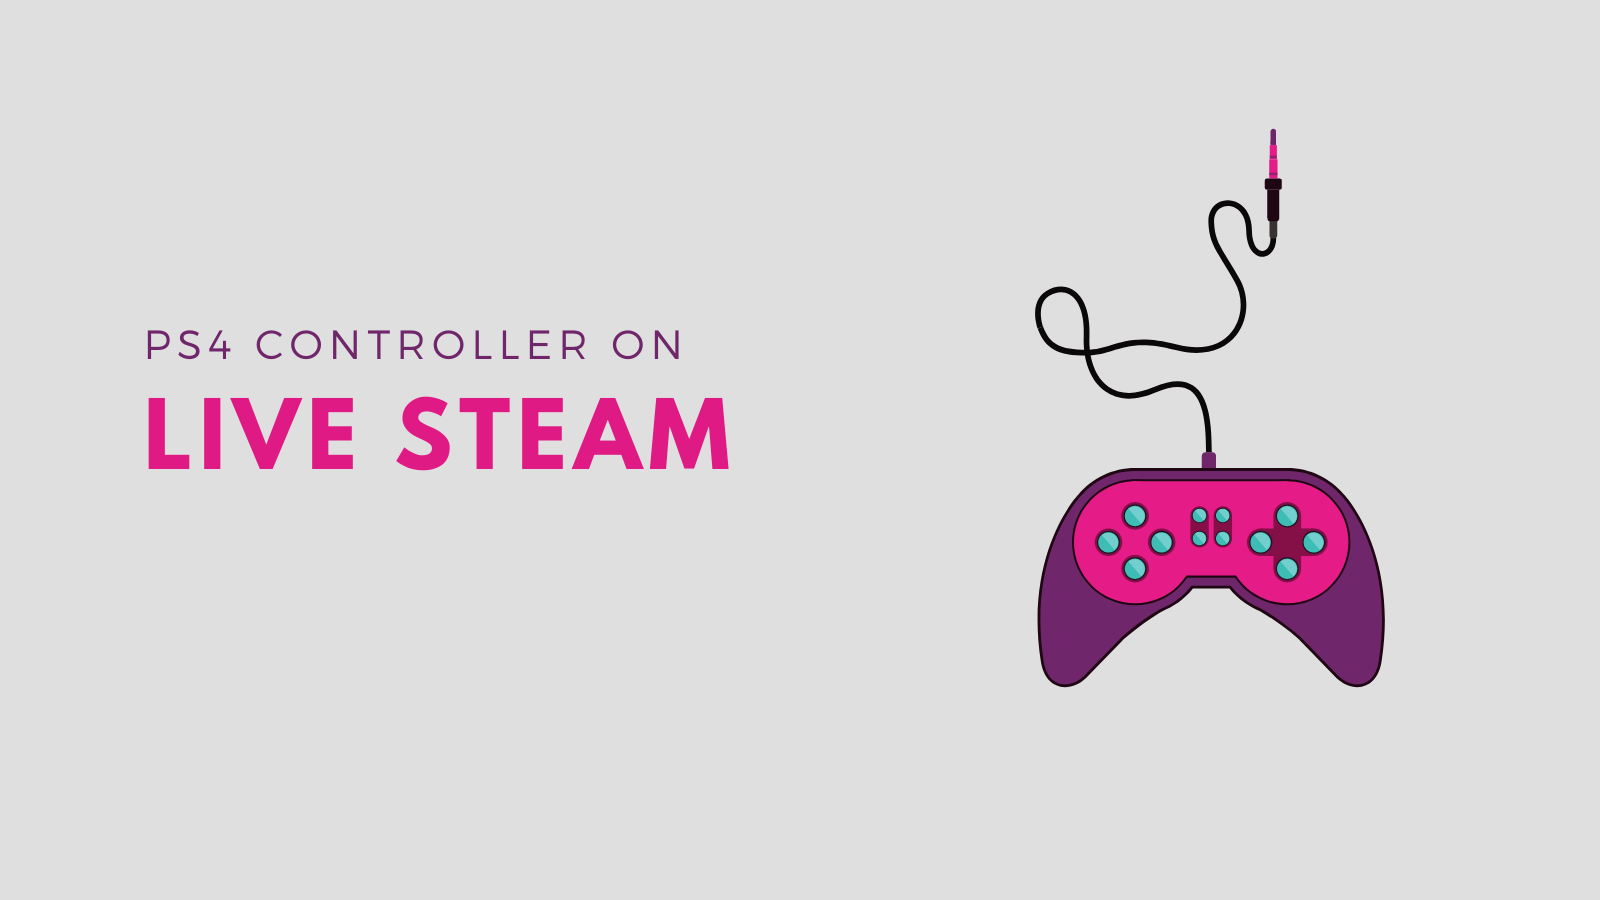 How to Use PS4 Controller on Steam?